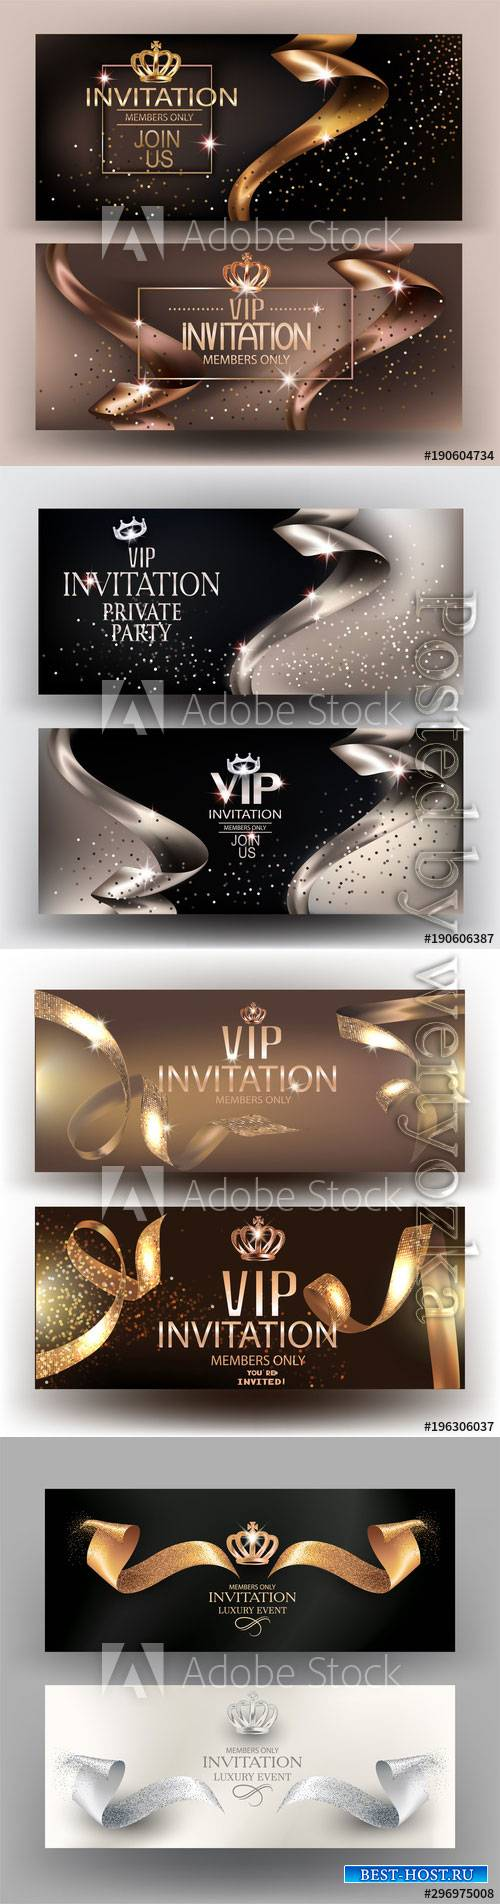 Vip elegant vector invitation cards with gold beautiful ribbons and vintage elements